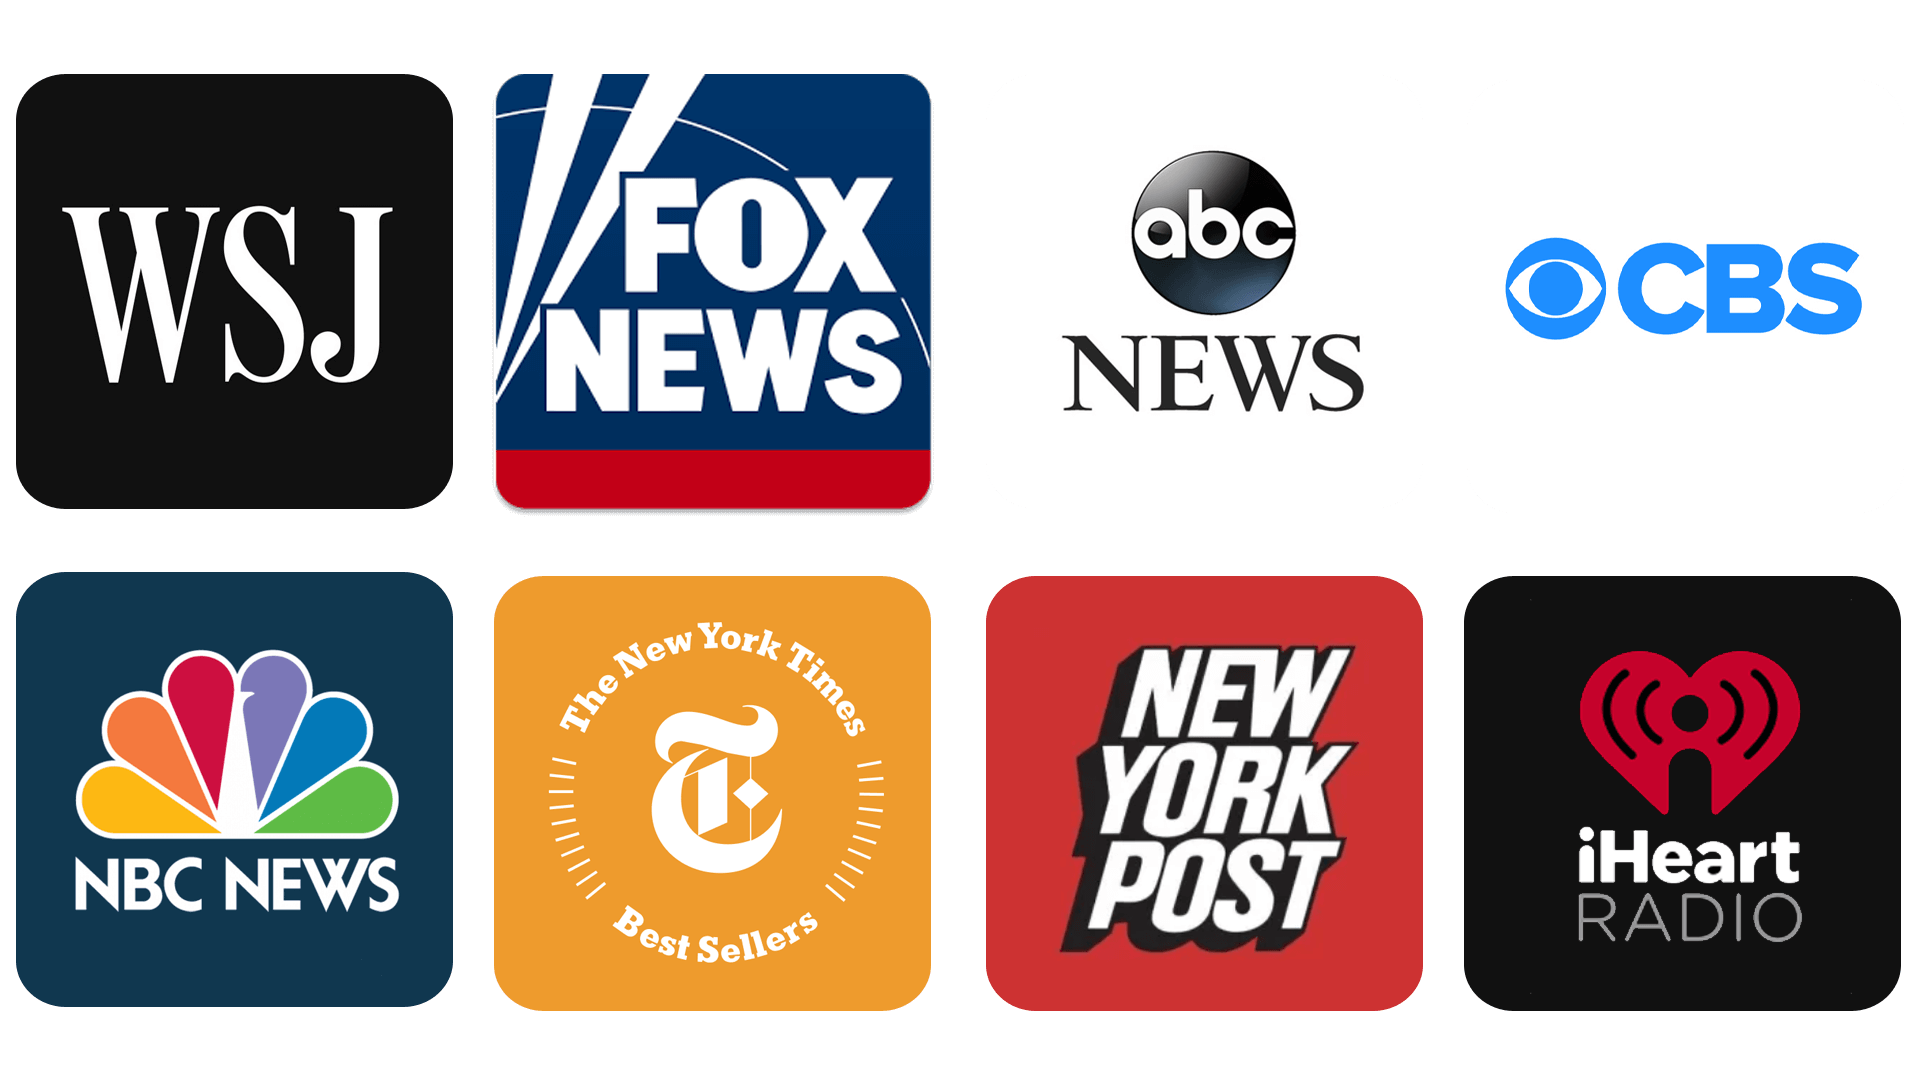 WSJ, FOX NEWS, abc NEWS, CBS, NBC NEWS, The New York Times, New York…